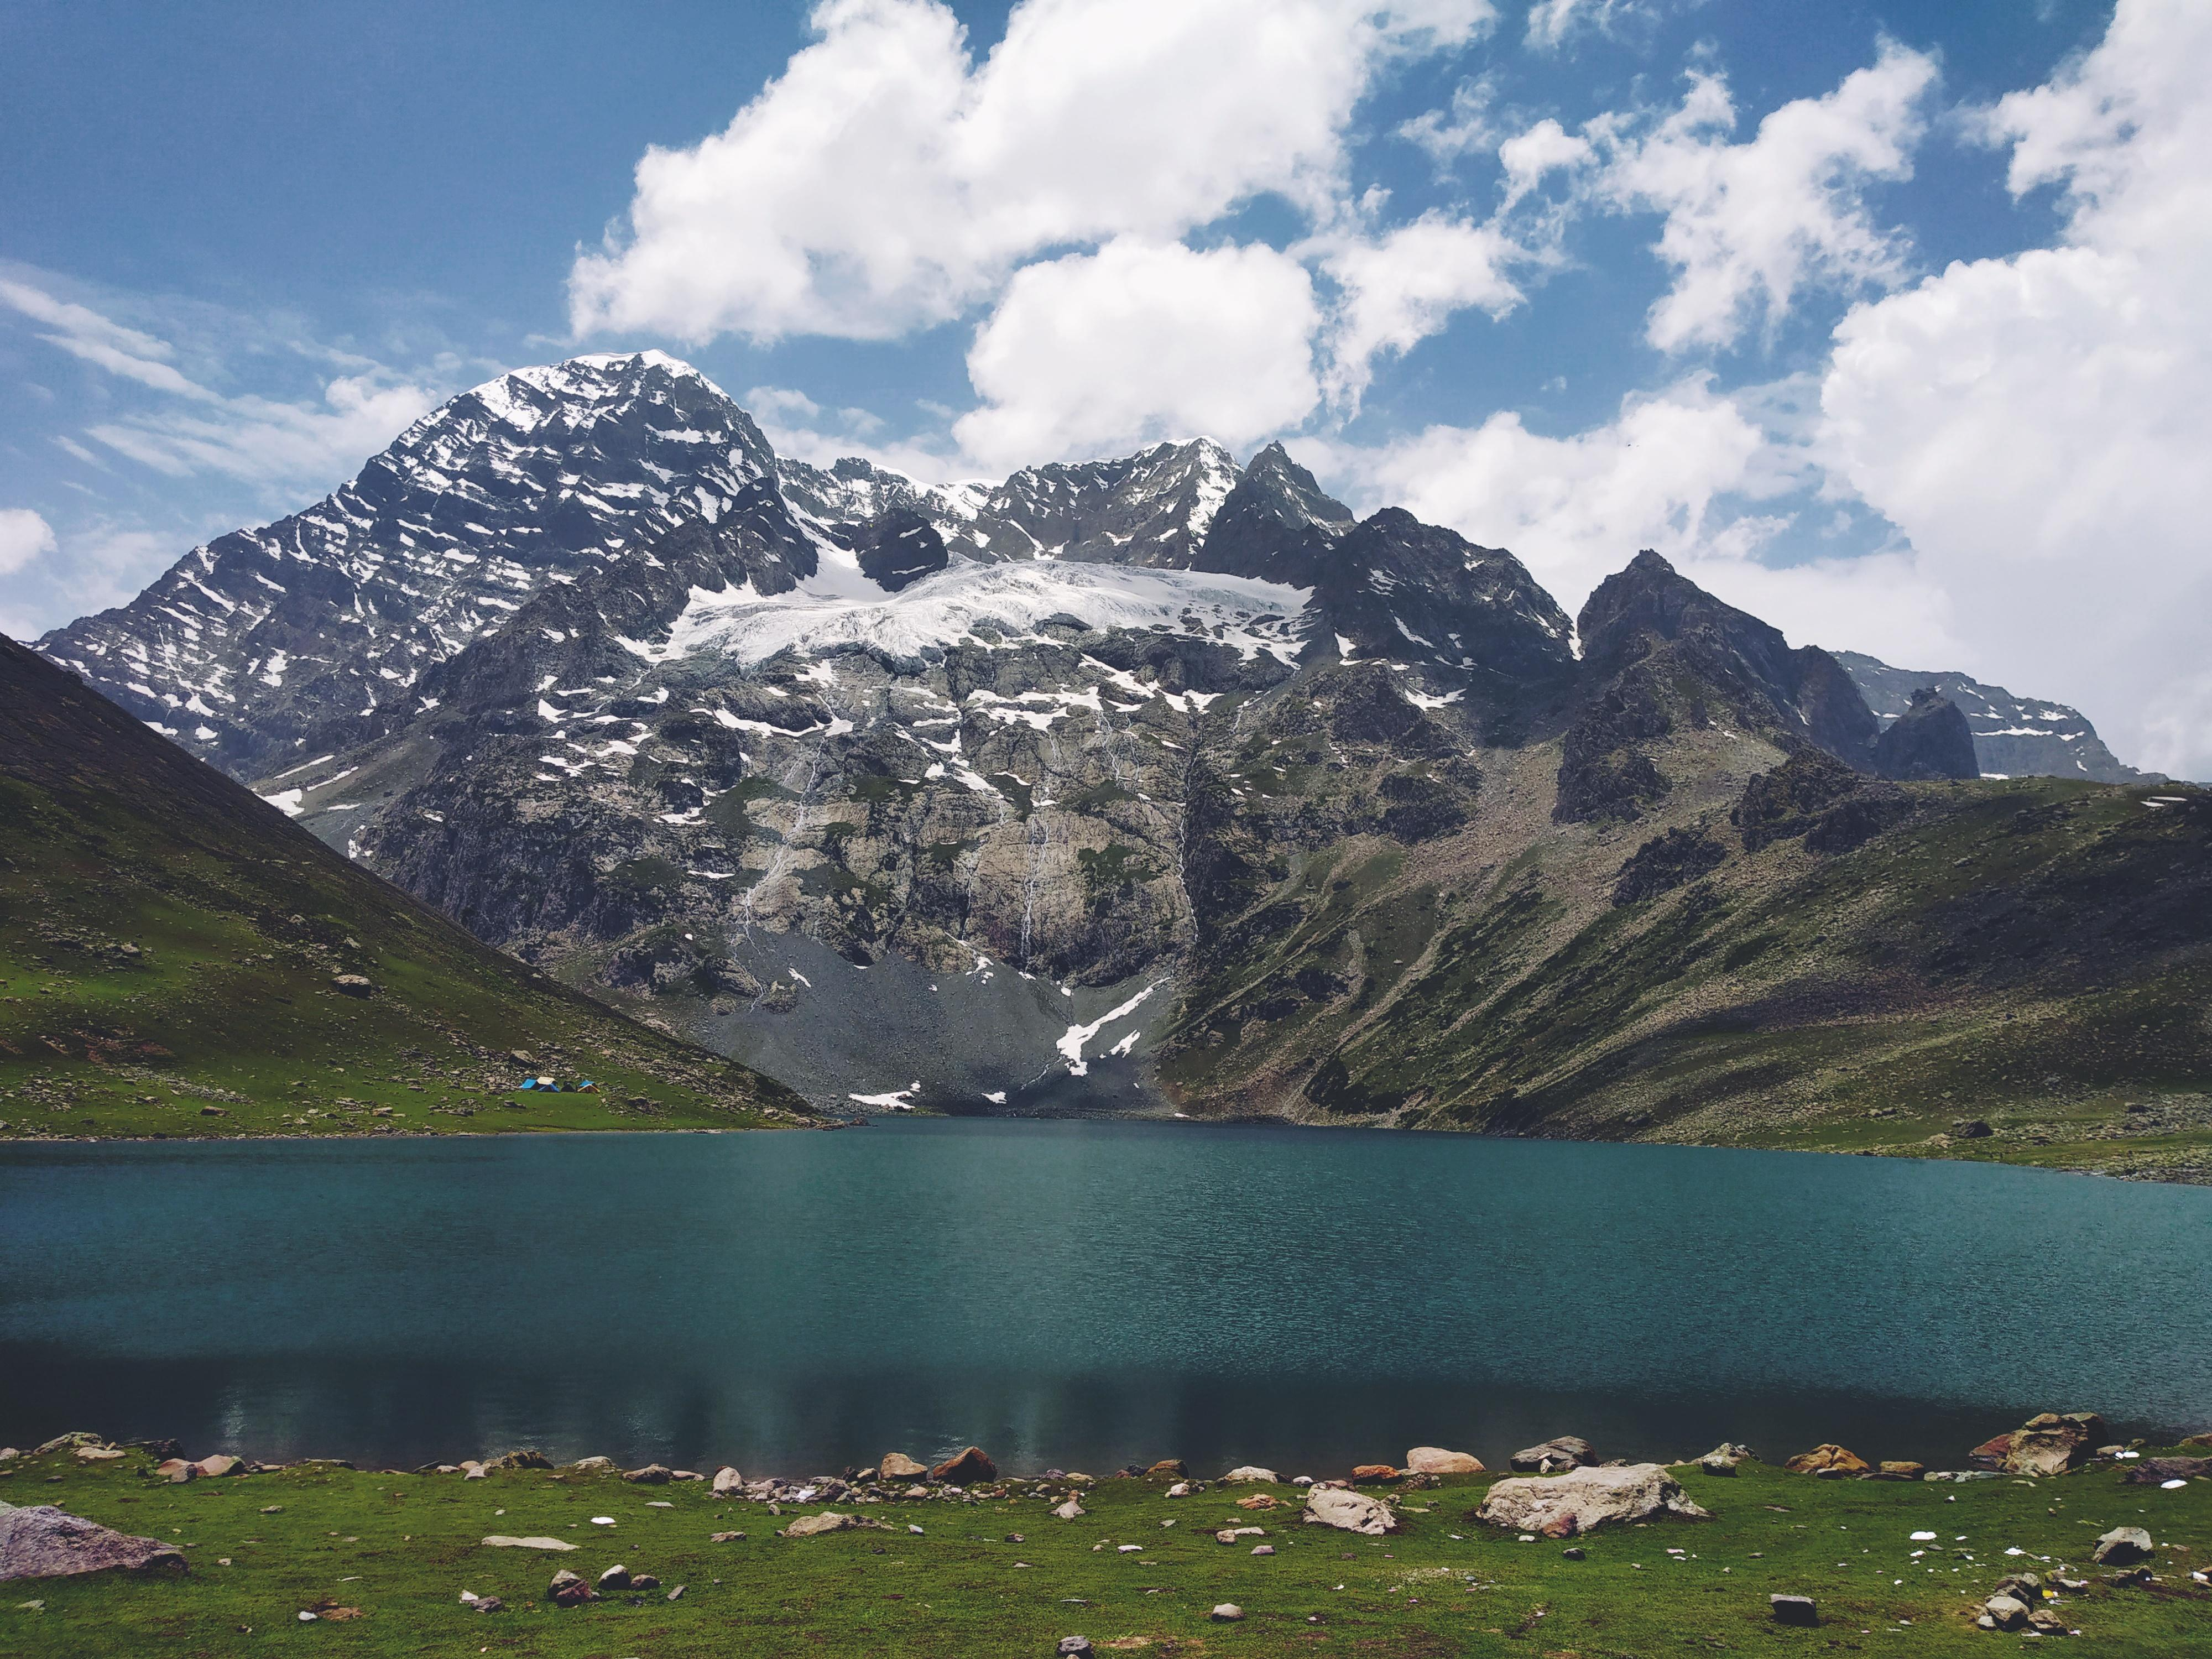 One Of The Five Great Himalayan Lakes Of Kashmir Nundkol